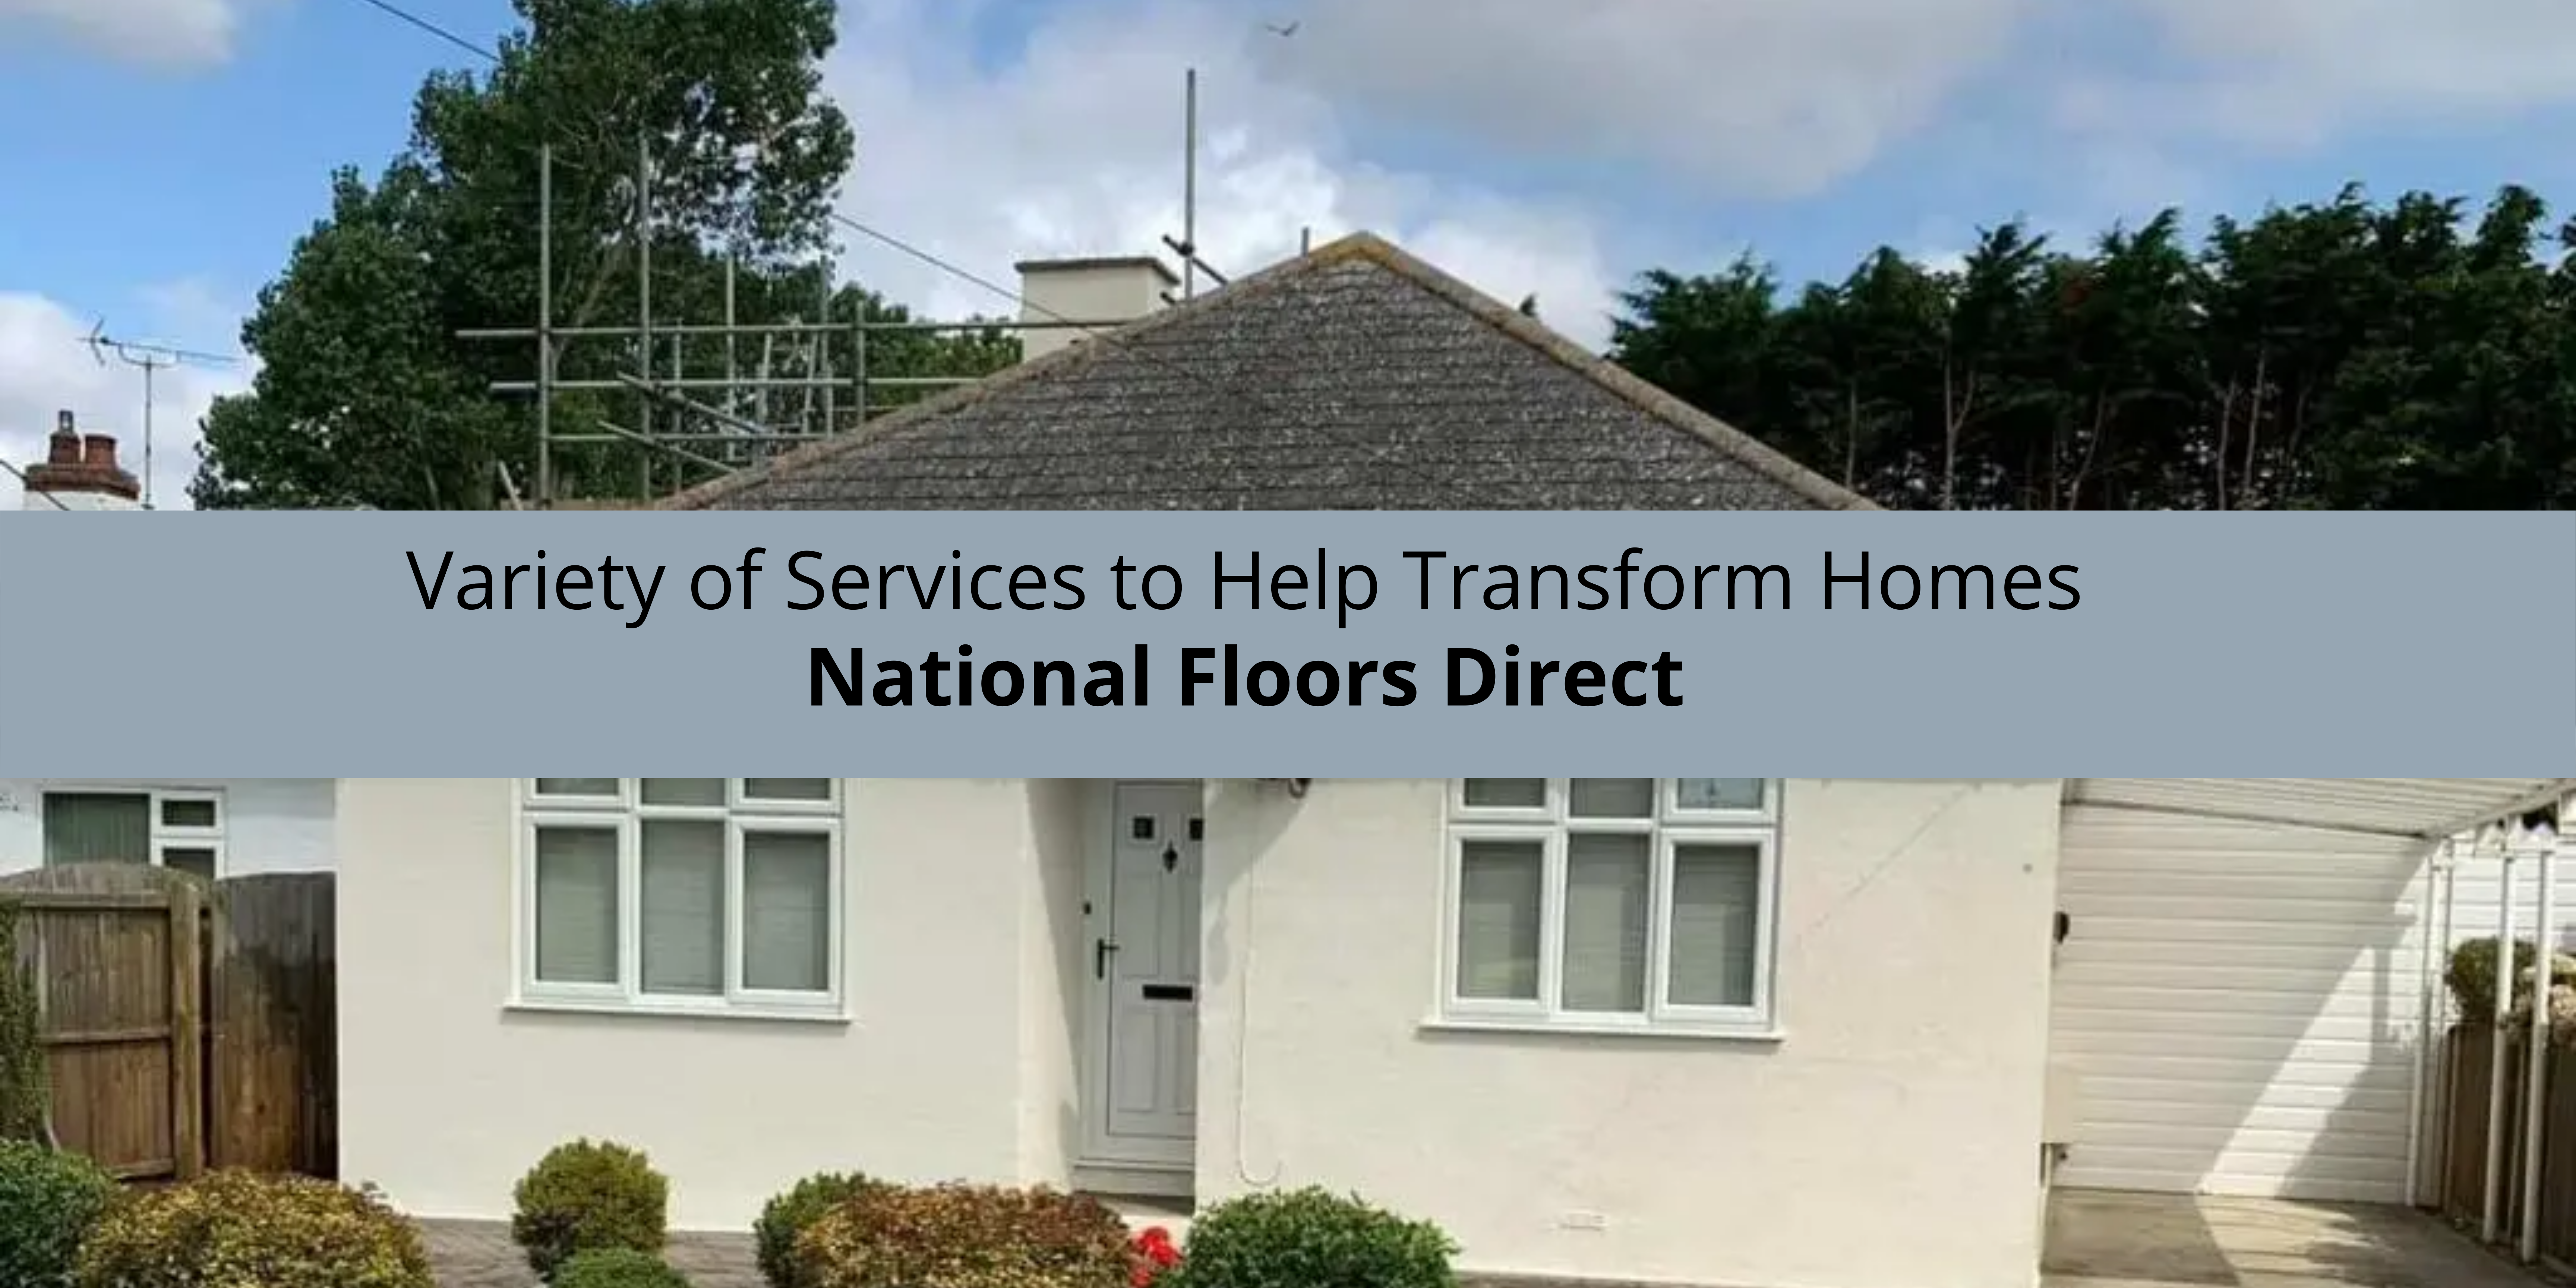 National Floors Direct Present Their Variety of Services to Help Transform Homes